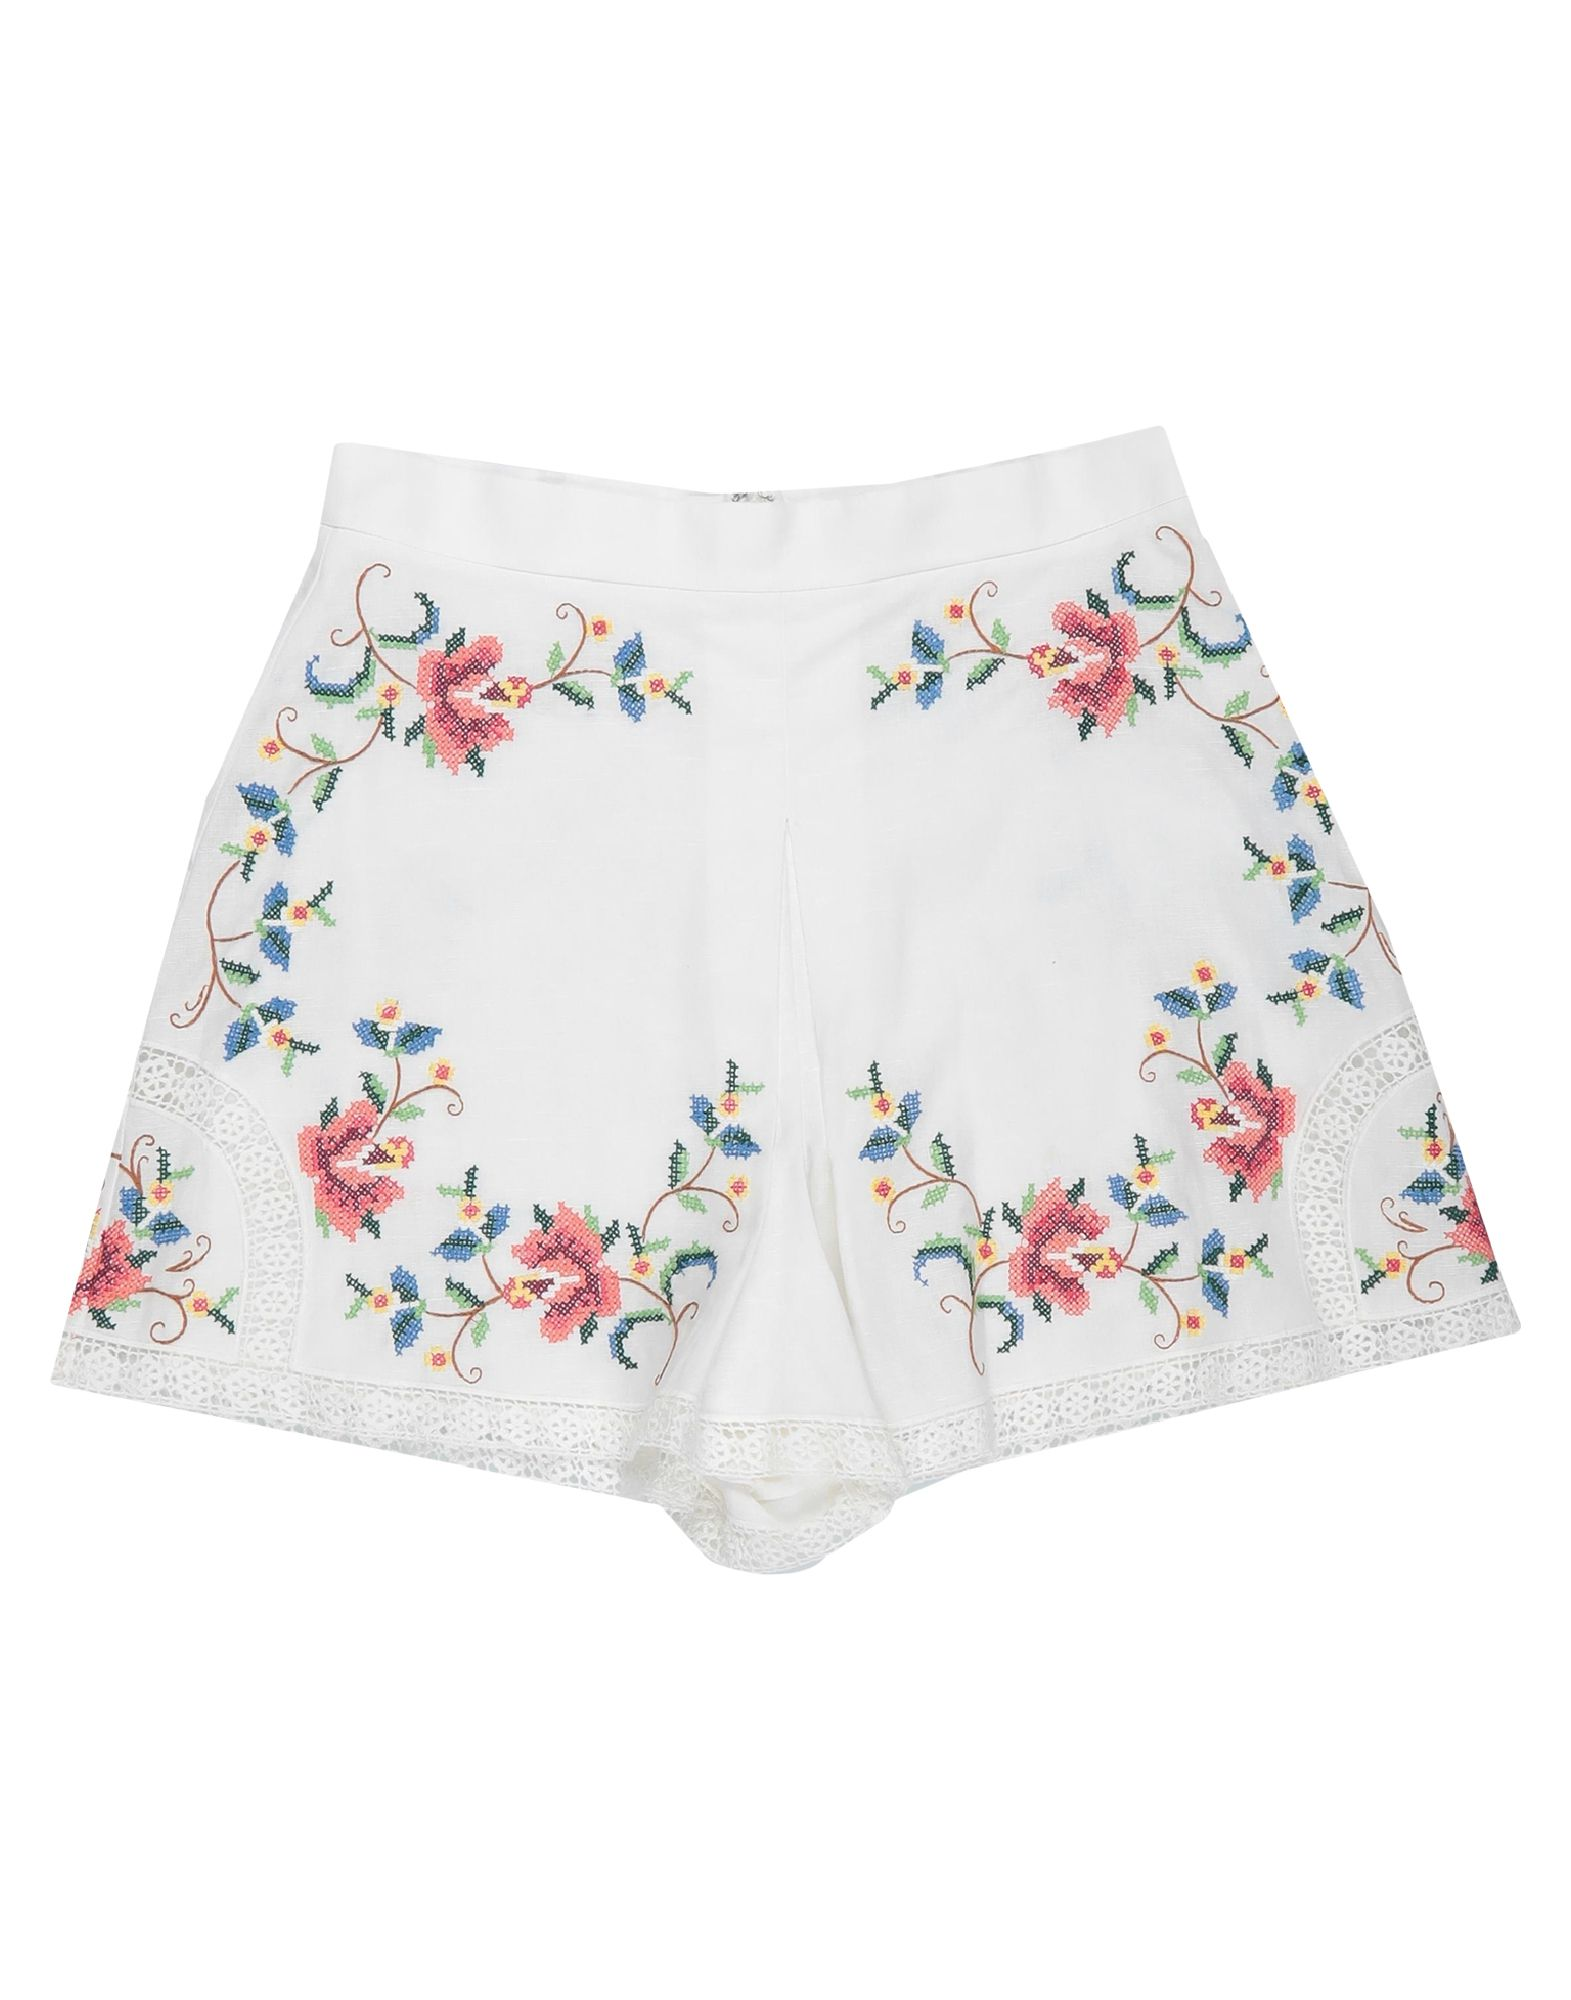 ZIMMERMANN Shorts. plain weave, embroidered detailing, solid color, high waisted, zip, no pockets, unlined. 55% Linen, 45% Cotton